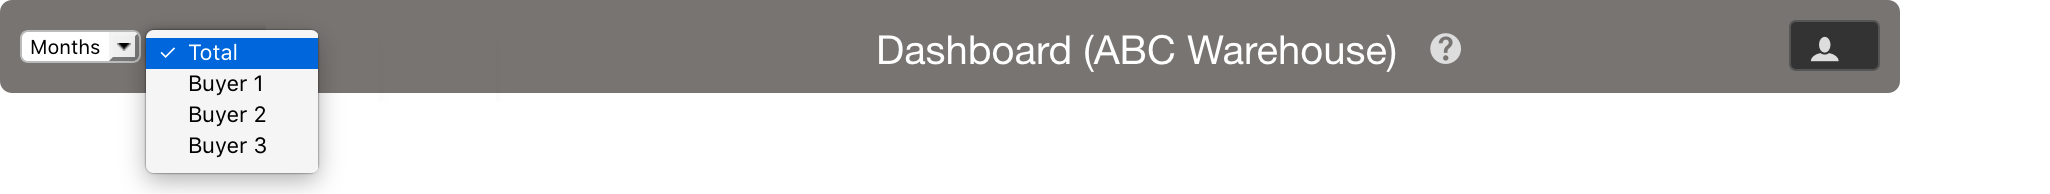 dashboard_selector_group.png